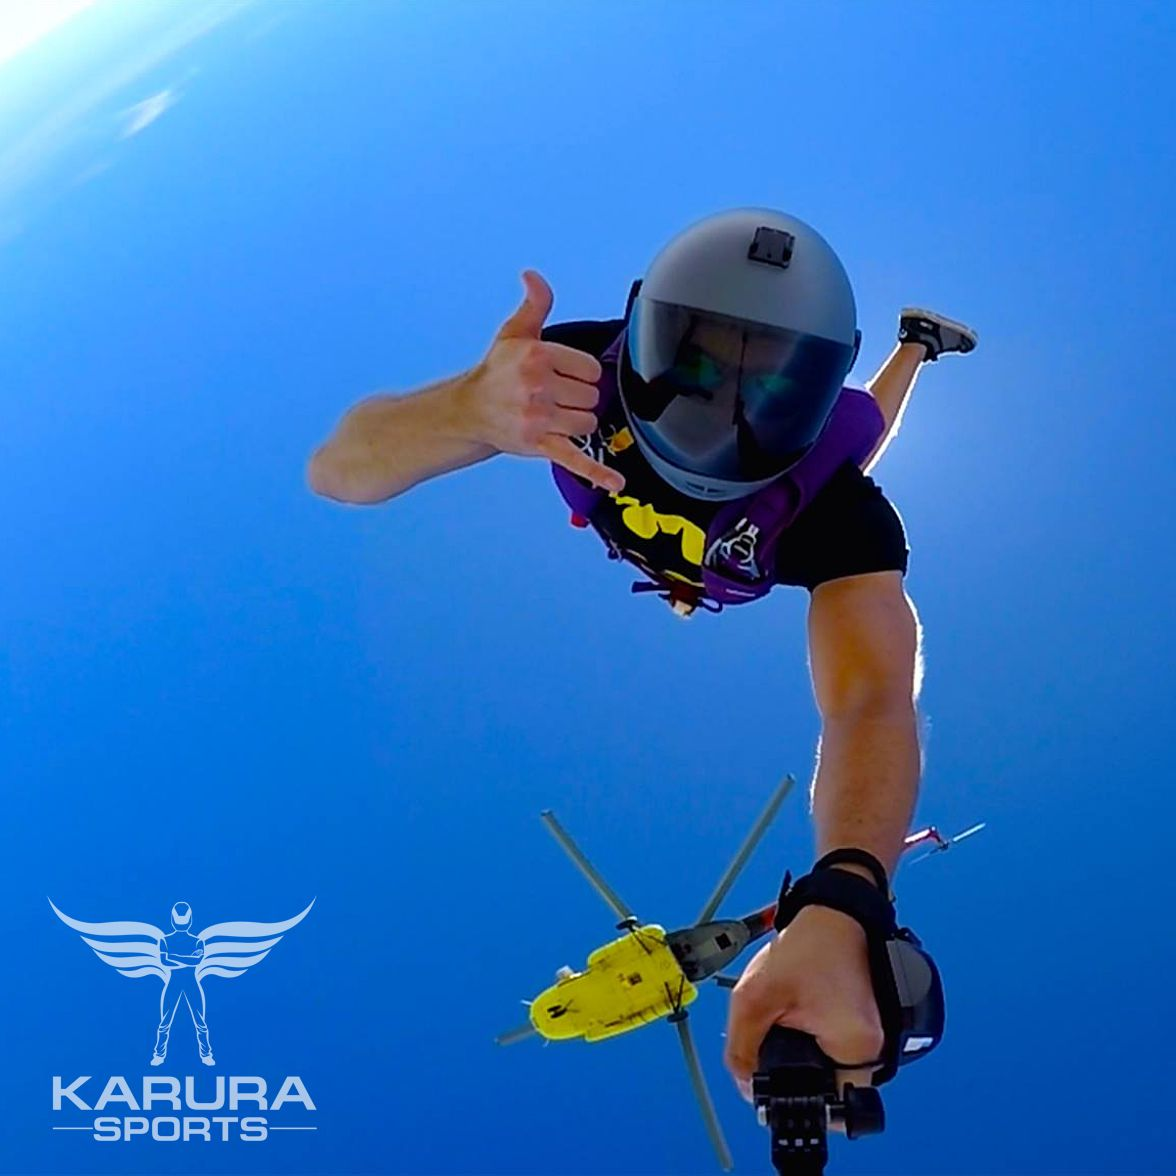 When Your Friends Are Sending You A Selfie Picture By Viktor Banko Skydiving Extreme Sports Sports